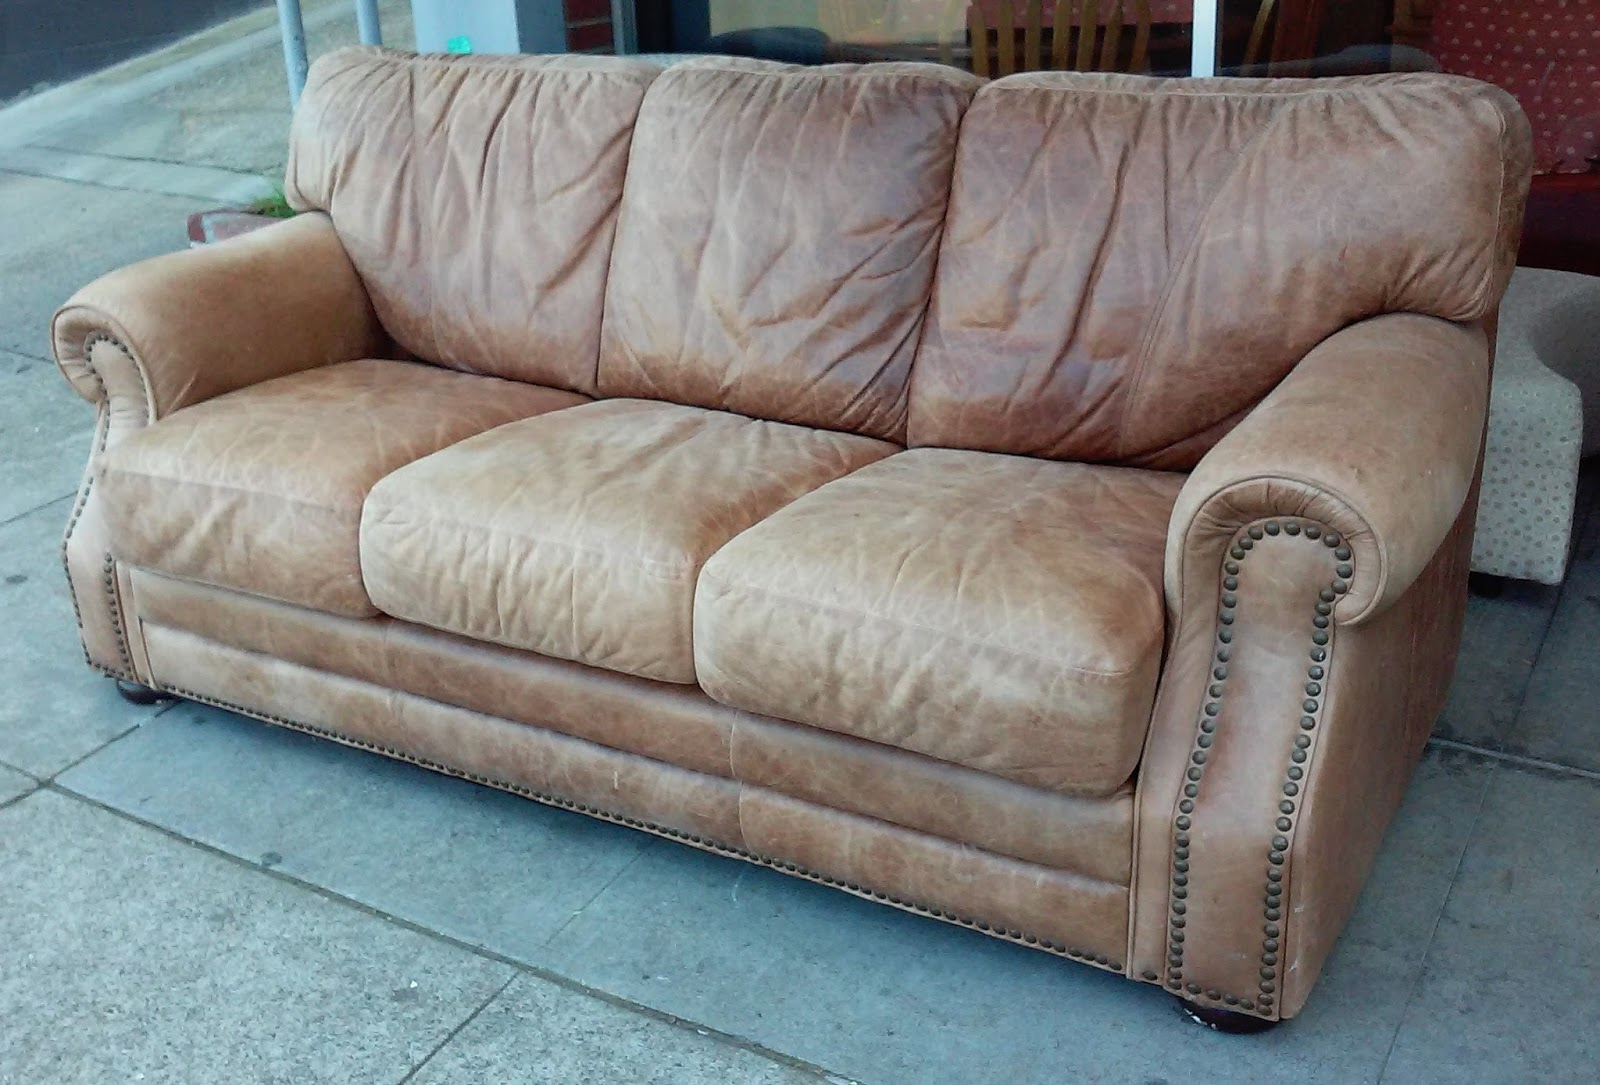 FURNITURE & COLLECTIBLES: SOLD